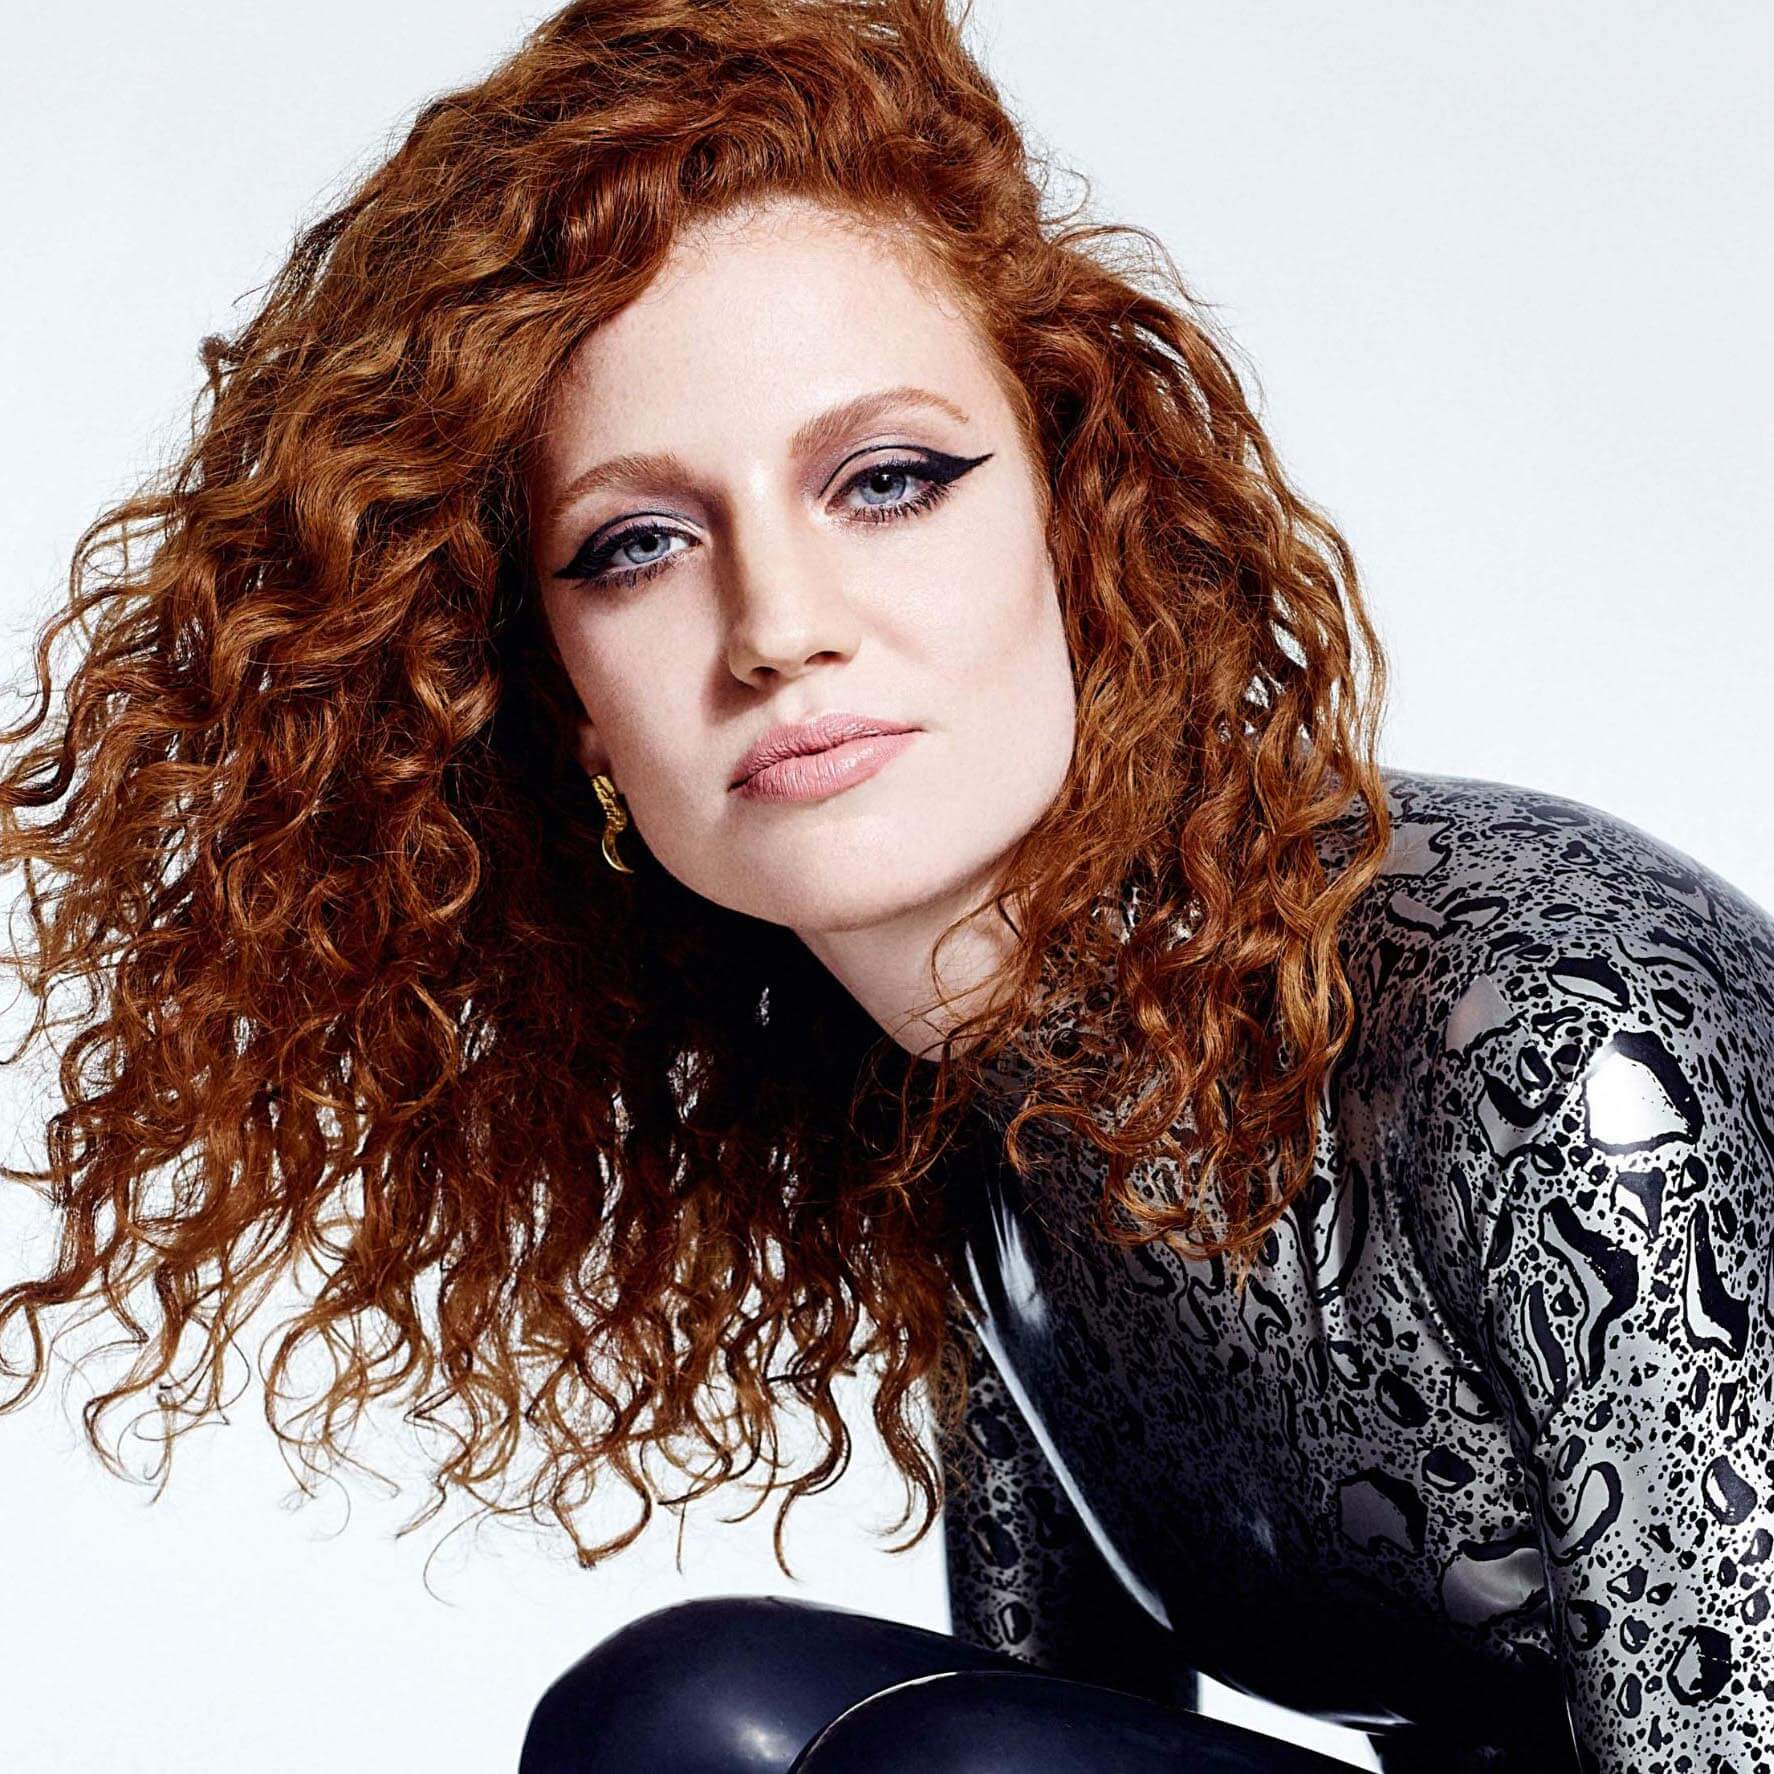 Fotos Jess Glynne nudes (43 photo), Ass, Is a cute, Instagram, butt 2020